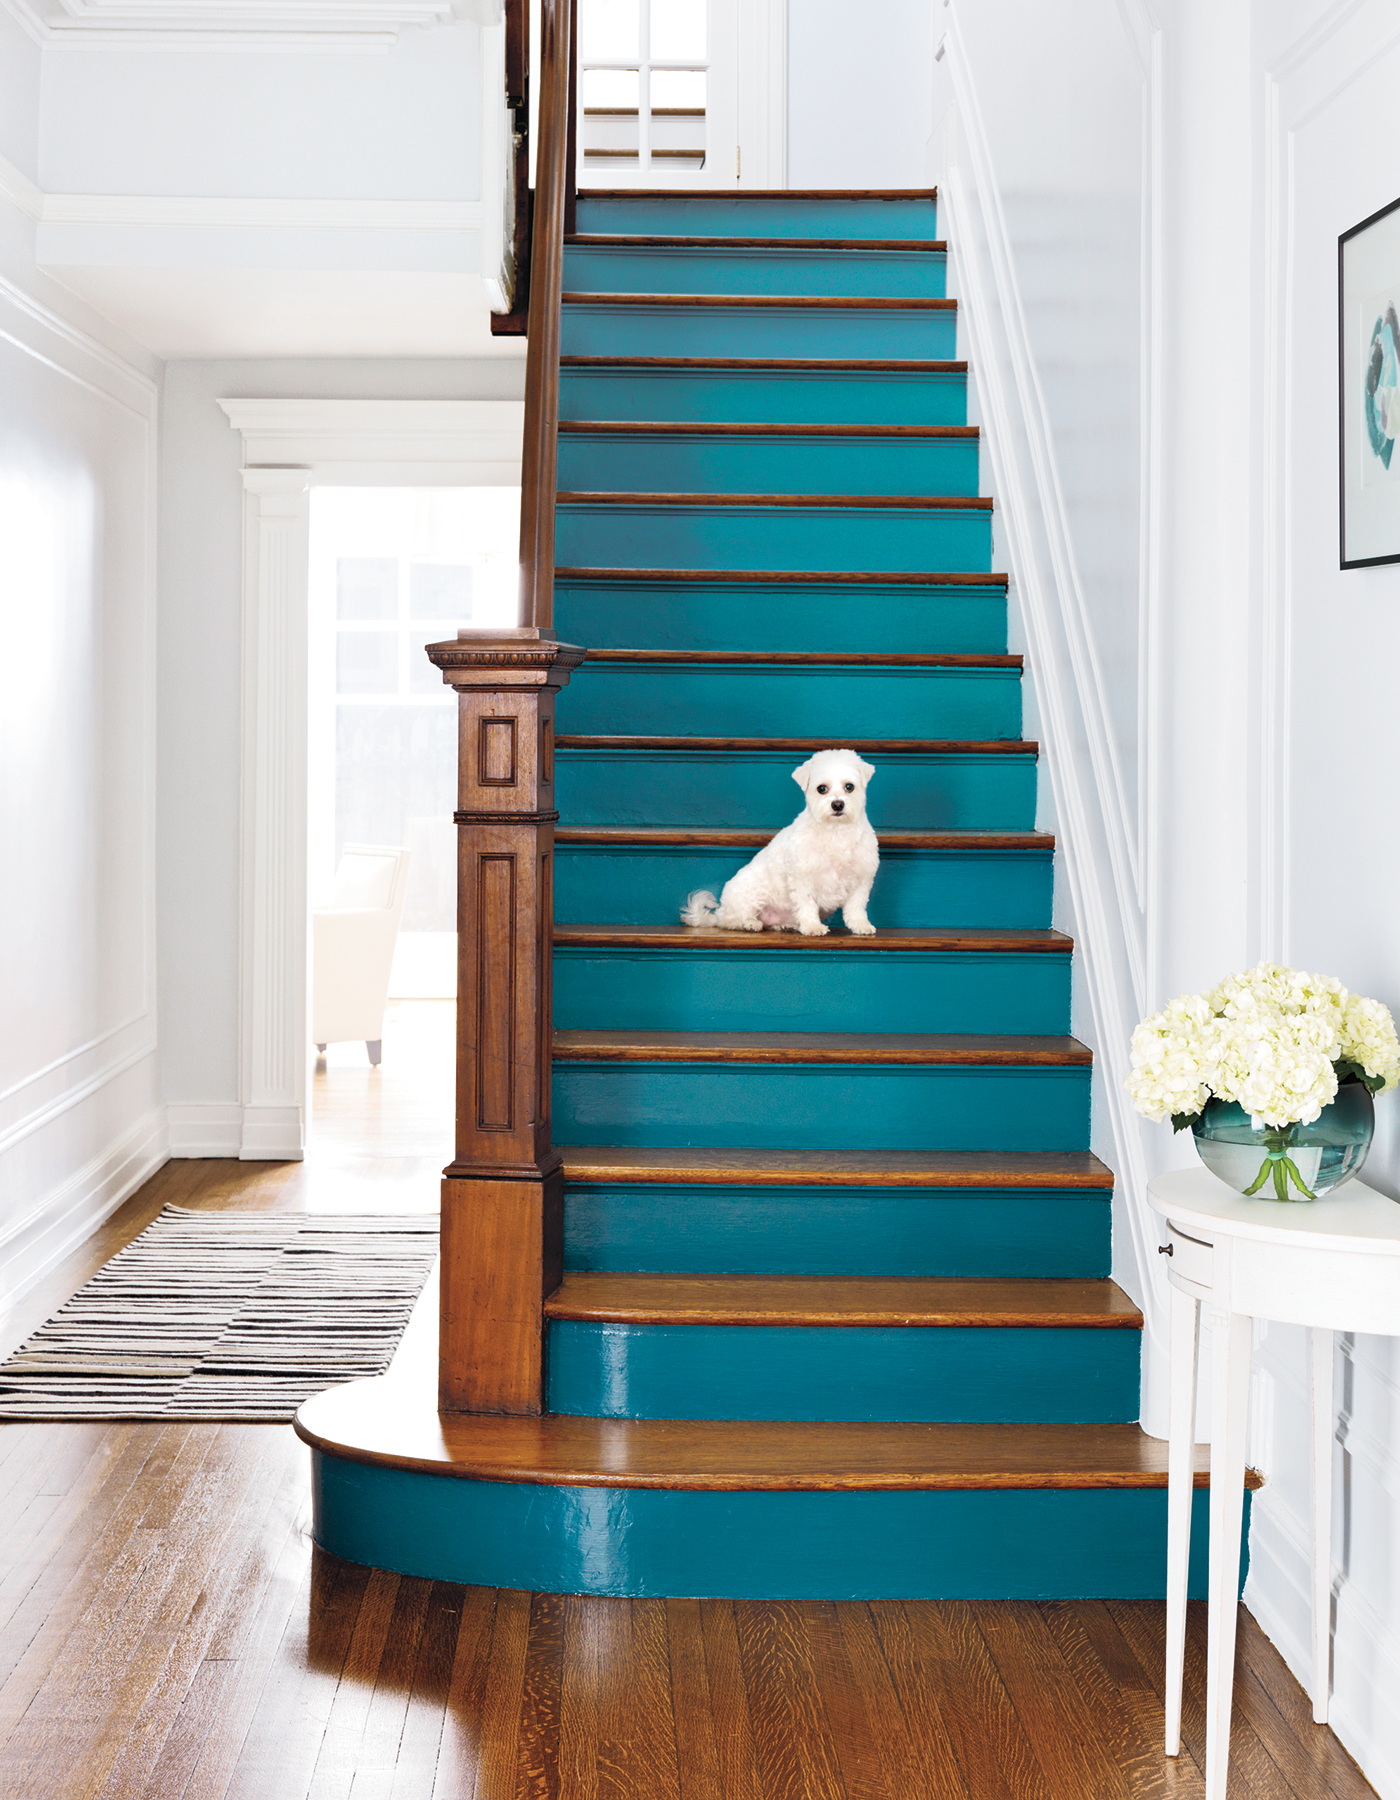 5 Surprising and Easy Painting Ideas to Add Color to Your Home